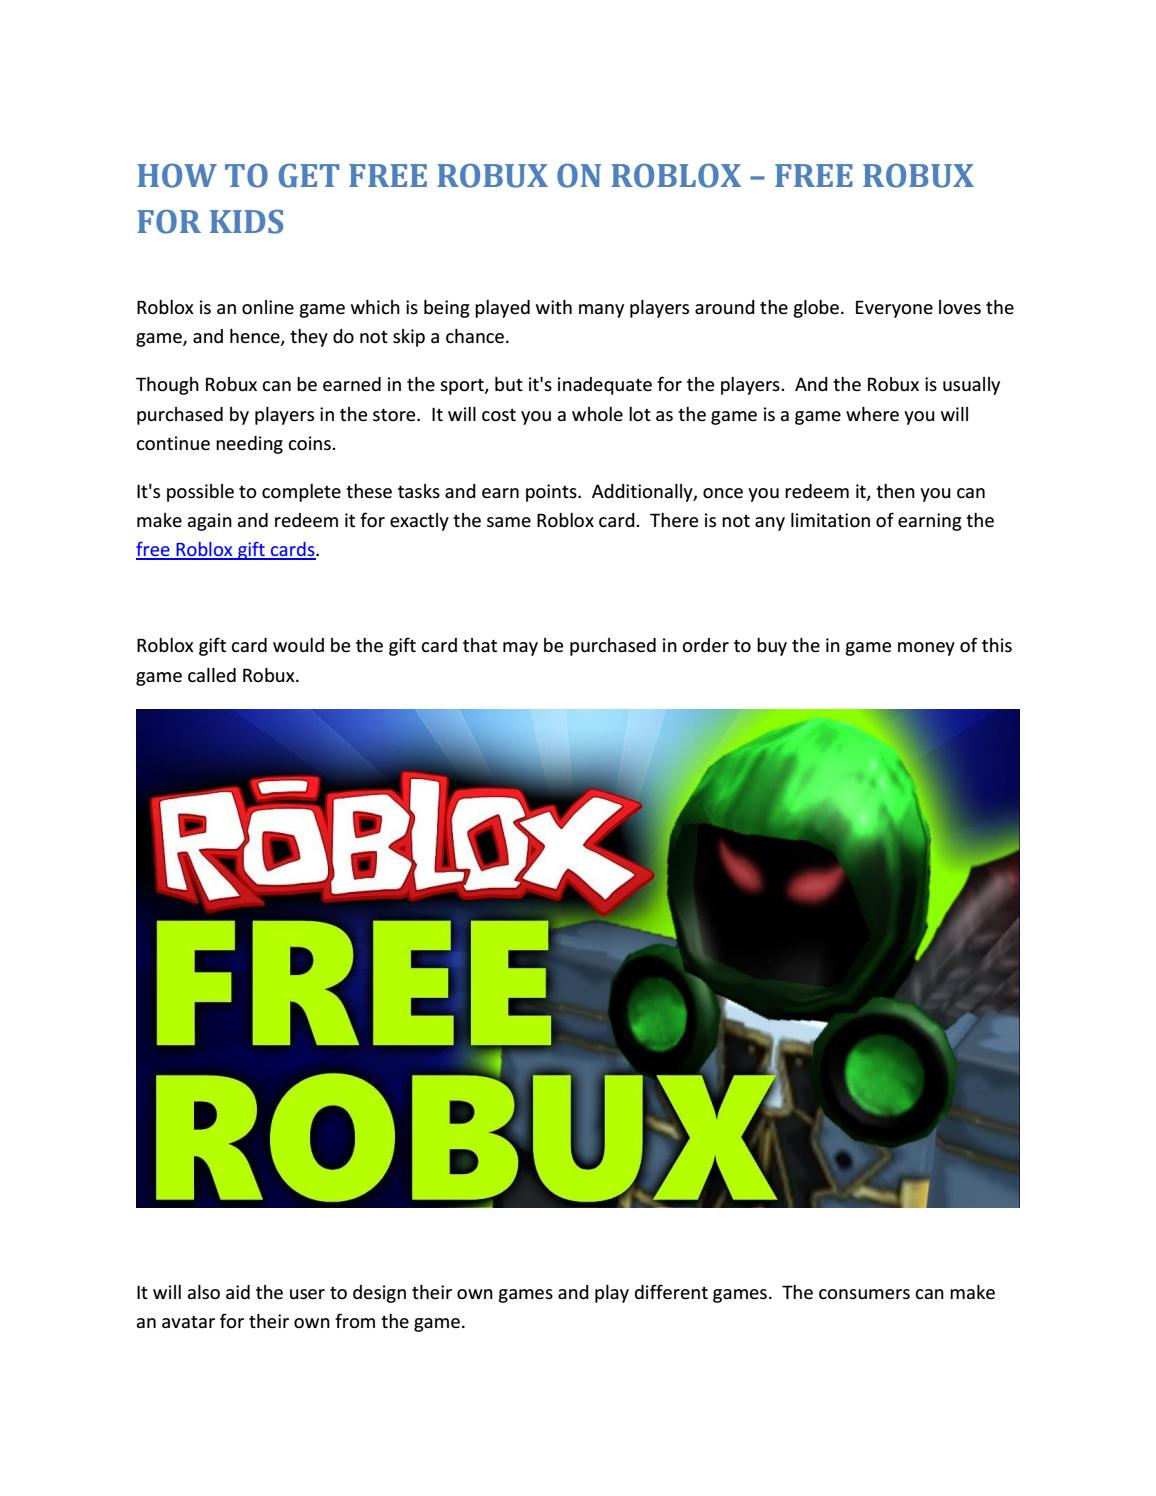 Earn Free Robux No Human Verification Need Some Free Robux For Kids Check Out This New Robux Generator By Free Robux For Kids Issuu